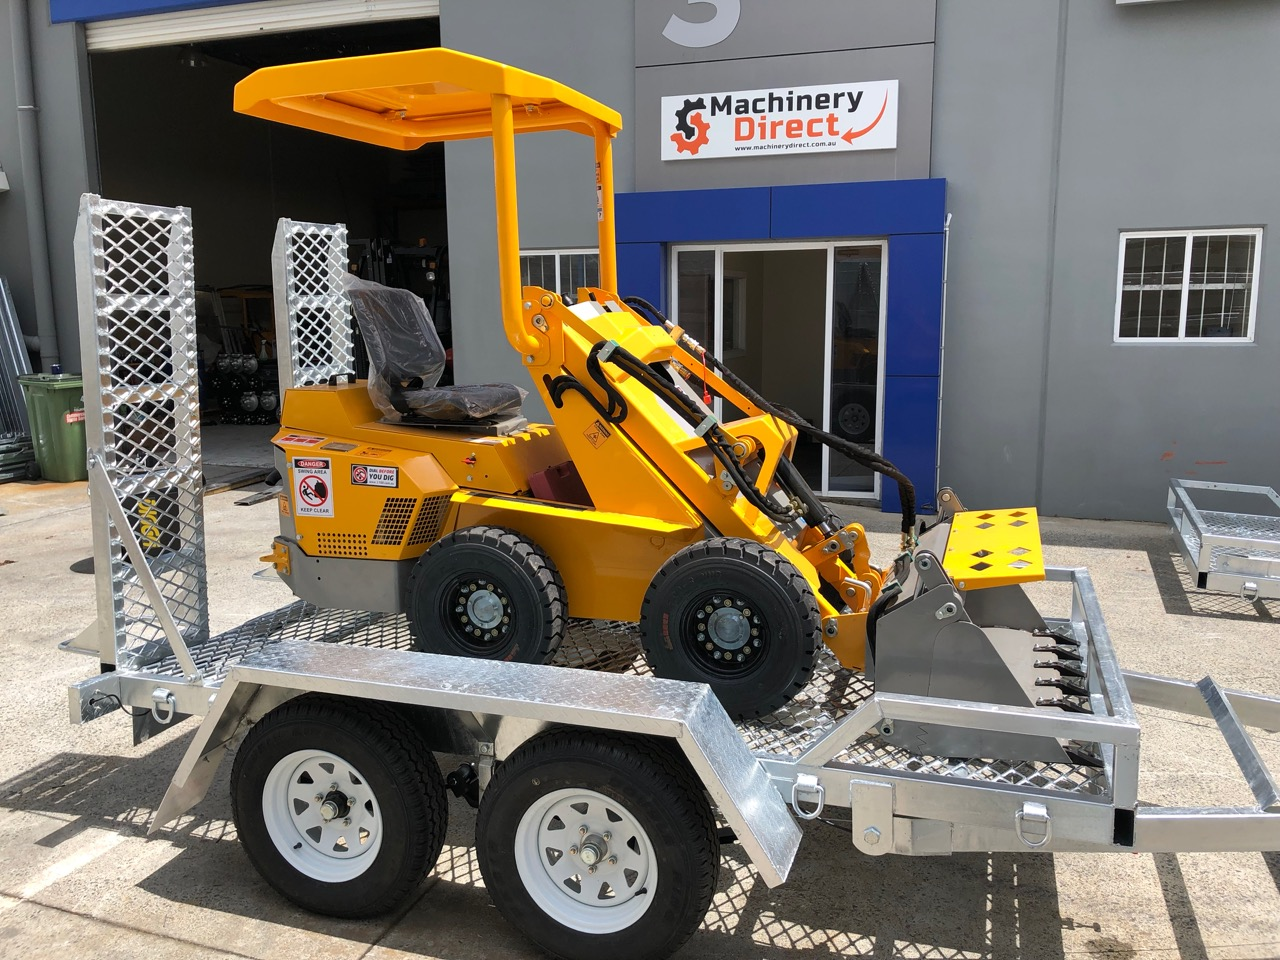 10x5 Plant Trailer 2000kgs loaded with mini excavator side view.